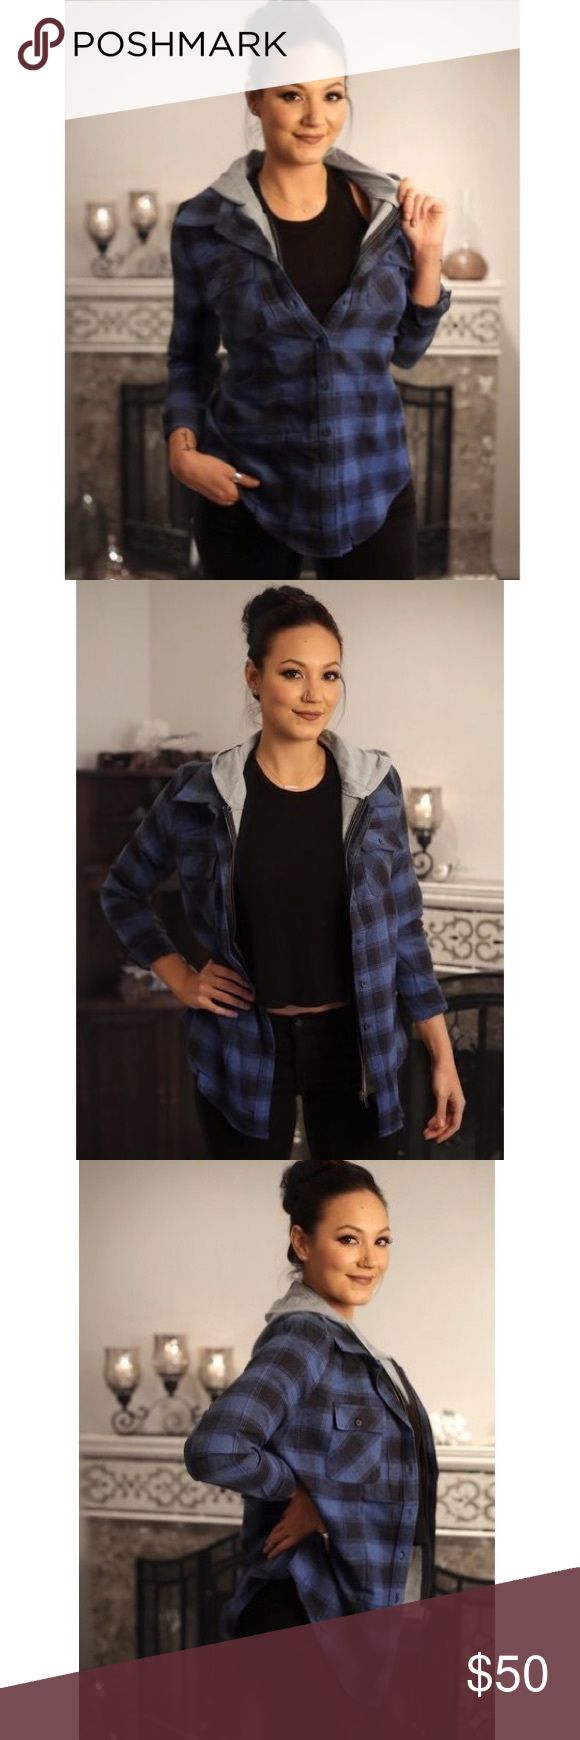 Flannel Jacket with Hood With its blue and black checkered design, a contrast hood and buttoned cuffs, you are able to wear this must have season favorite zipped up, buttoned, or left open. Tie it around your waist for a trendy look!   Fabric:  95% Cotton, 5% Polyester Contrast: 100% Polyester cavalini  Jackets & Coats